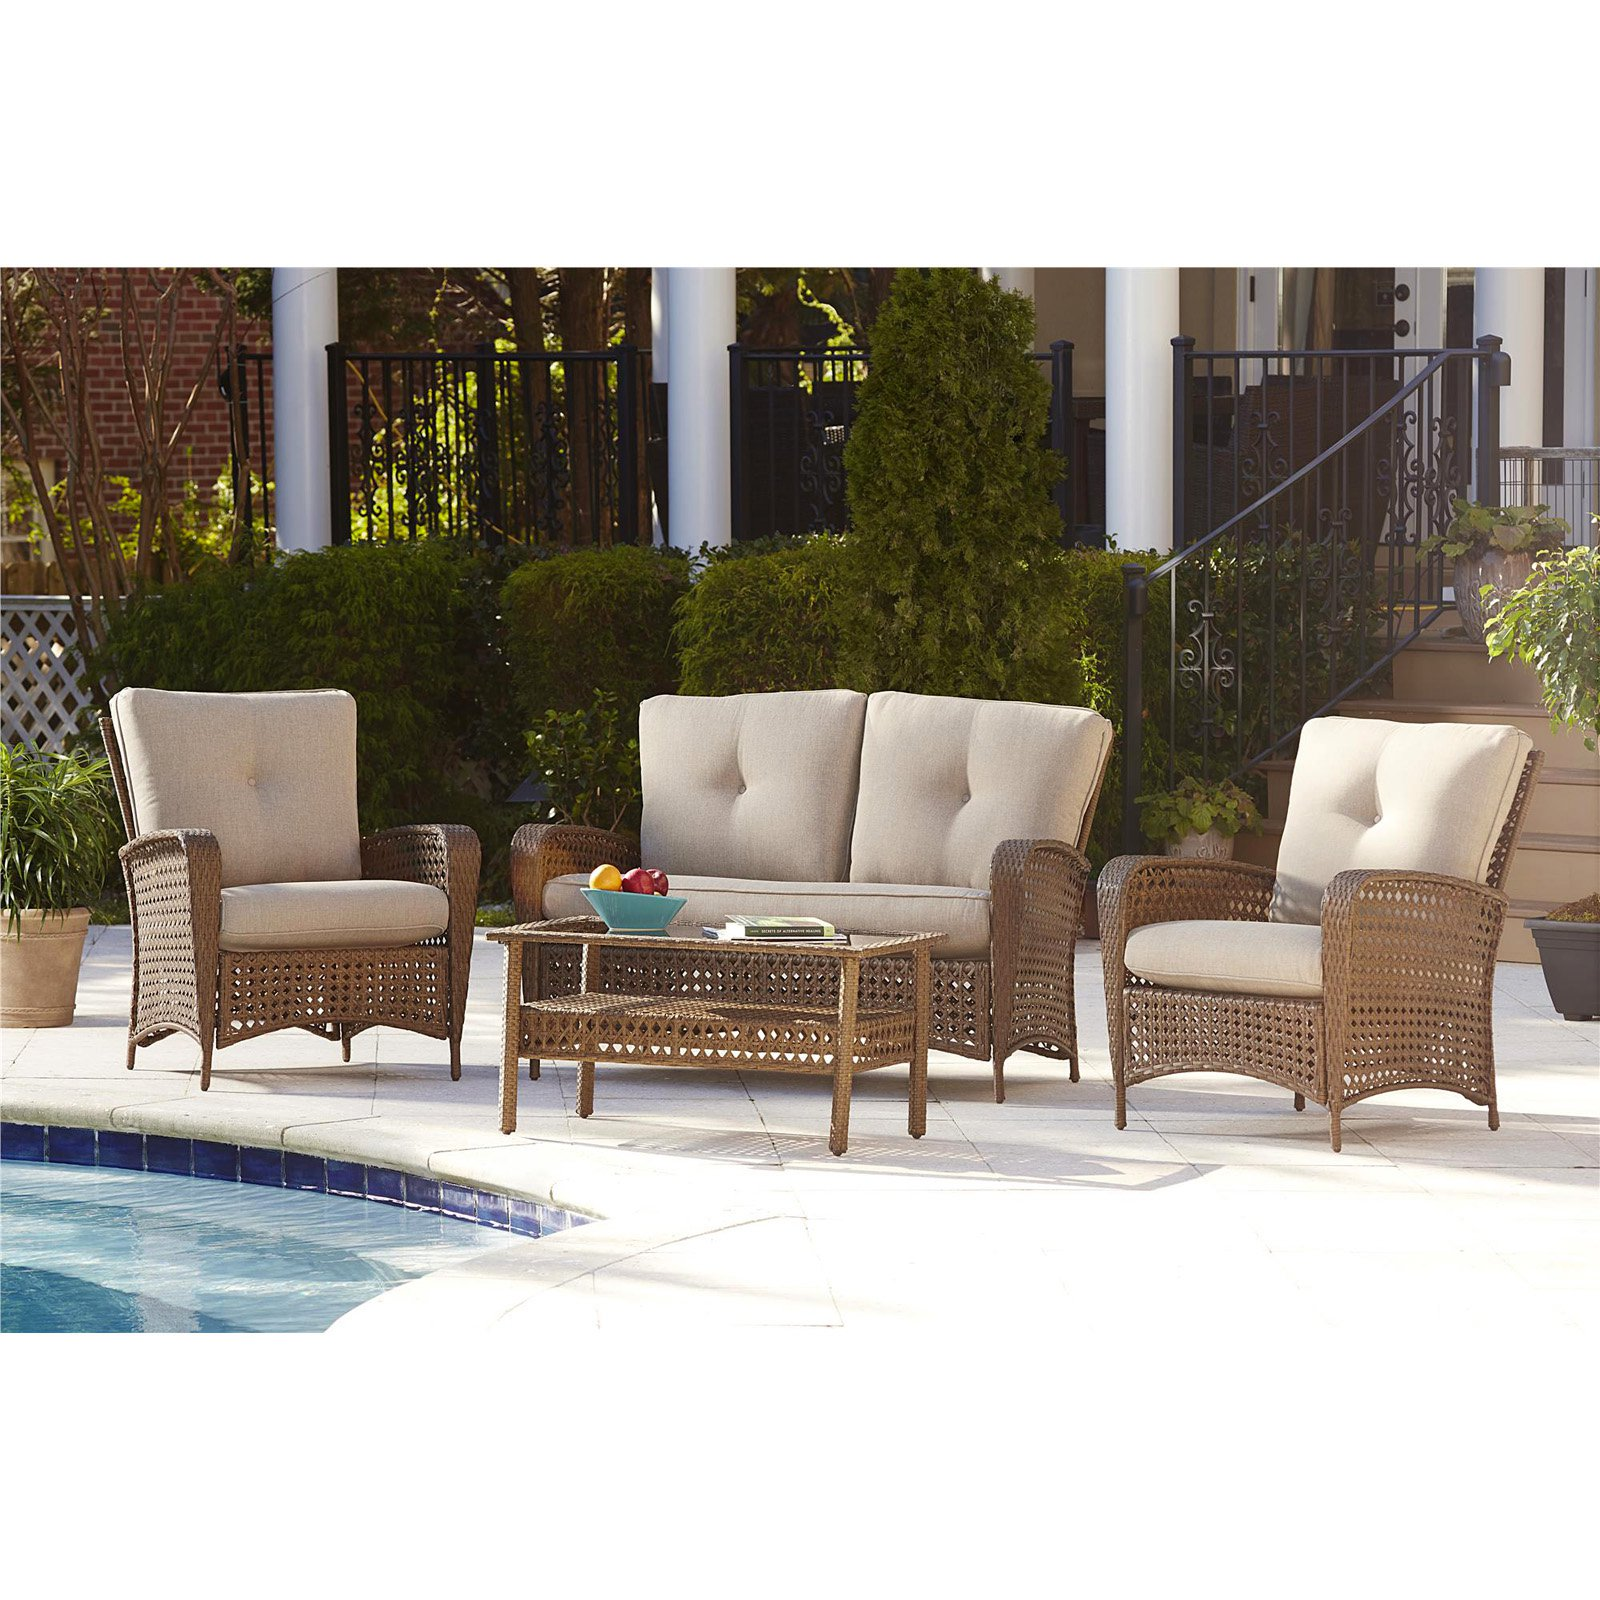 Cosco Outdoor 4 Piece Lakewood Ranch Steel Woven Wicker Patio Furniture  Conversation Set With Cushions